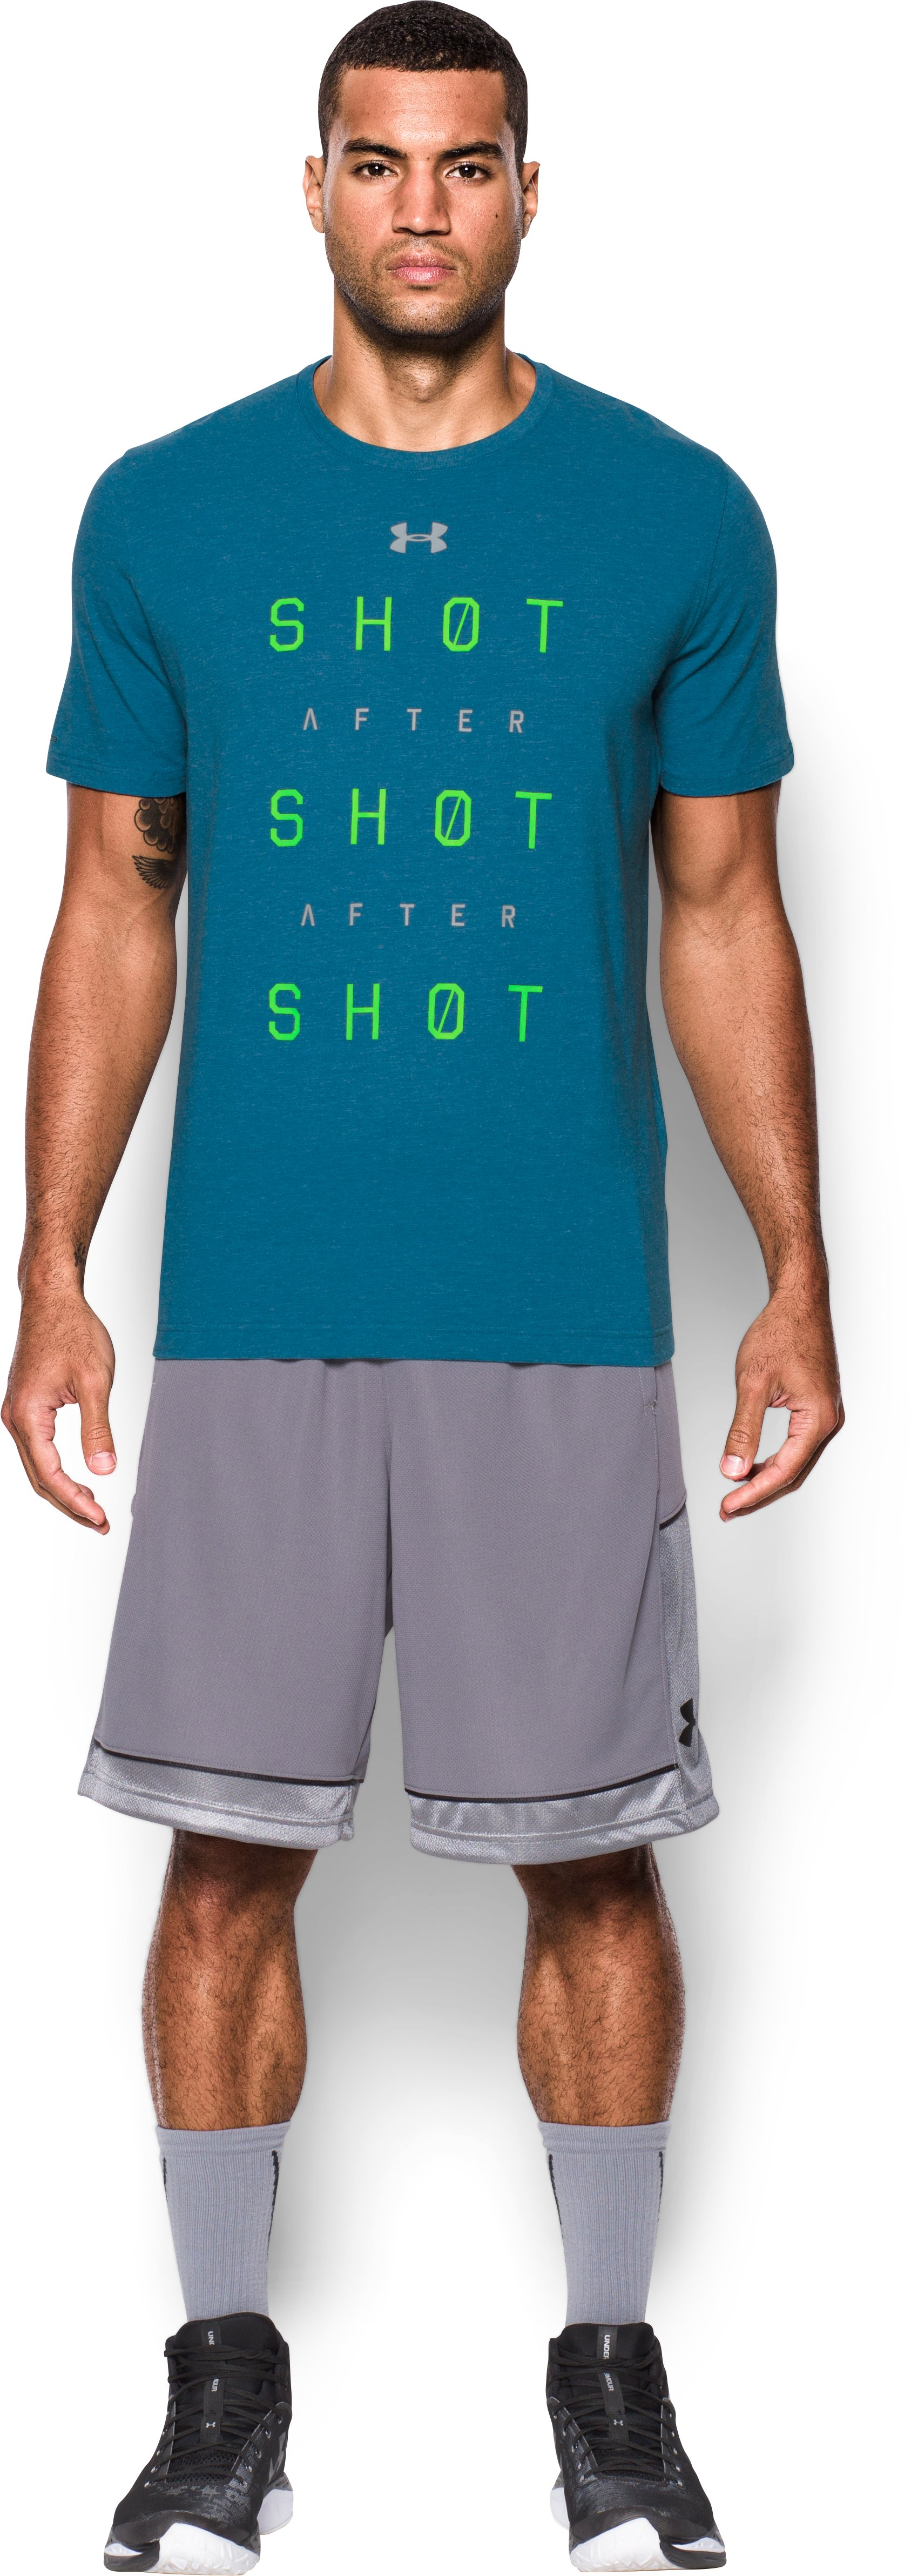 Men's UA Shot After Shot After Shot T-Shirt, PEACOCK